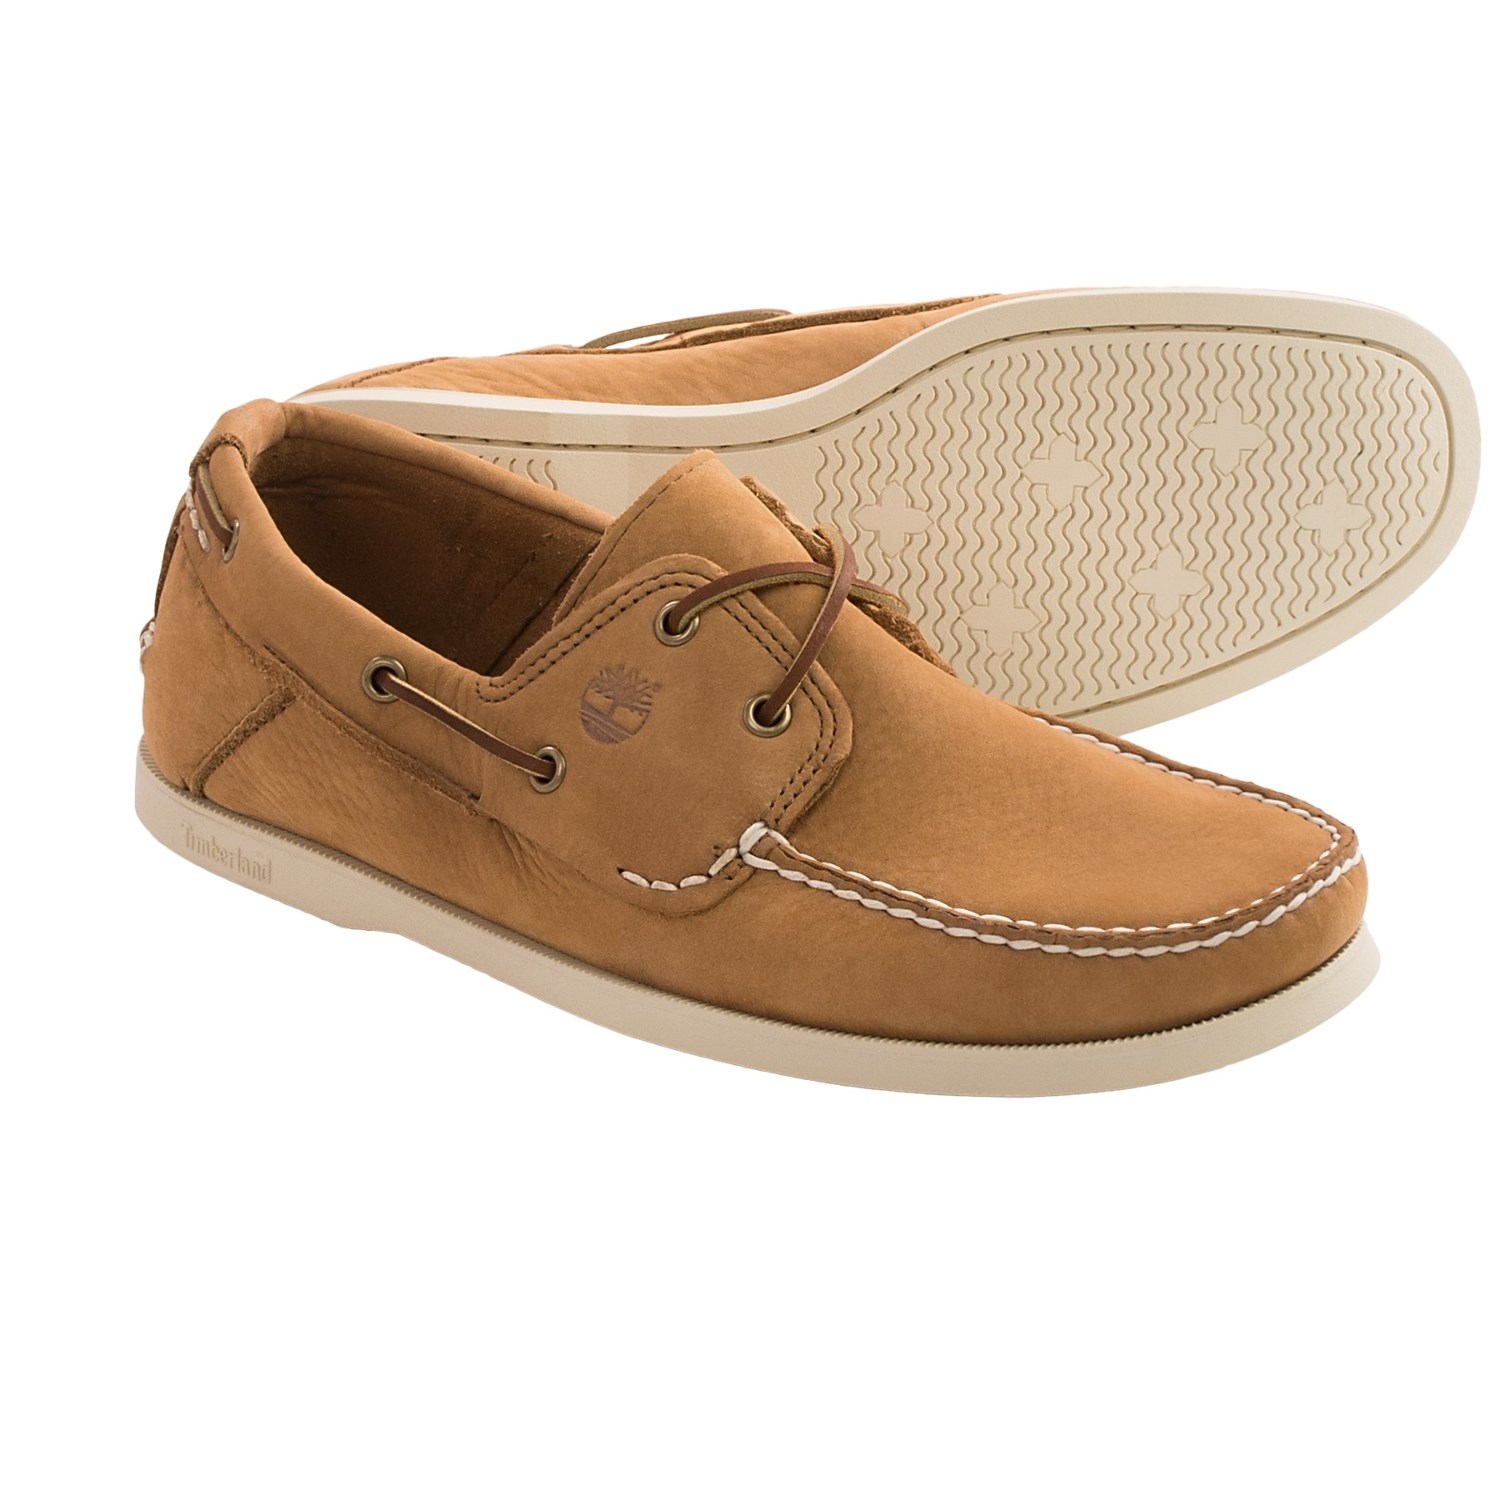 timberland earthkeepers heritage boat shoes for men. Black Bedroom Furniture Sets. Home Design Ideas